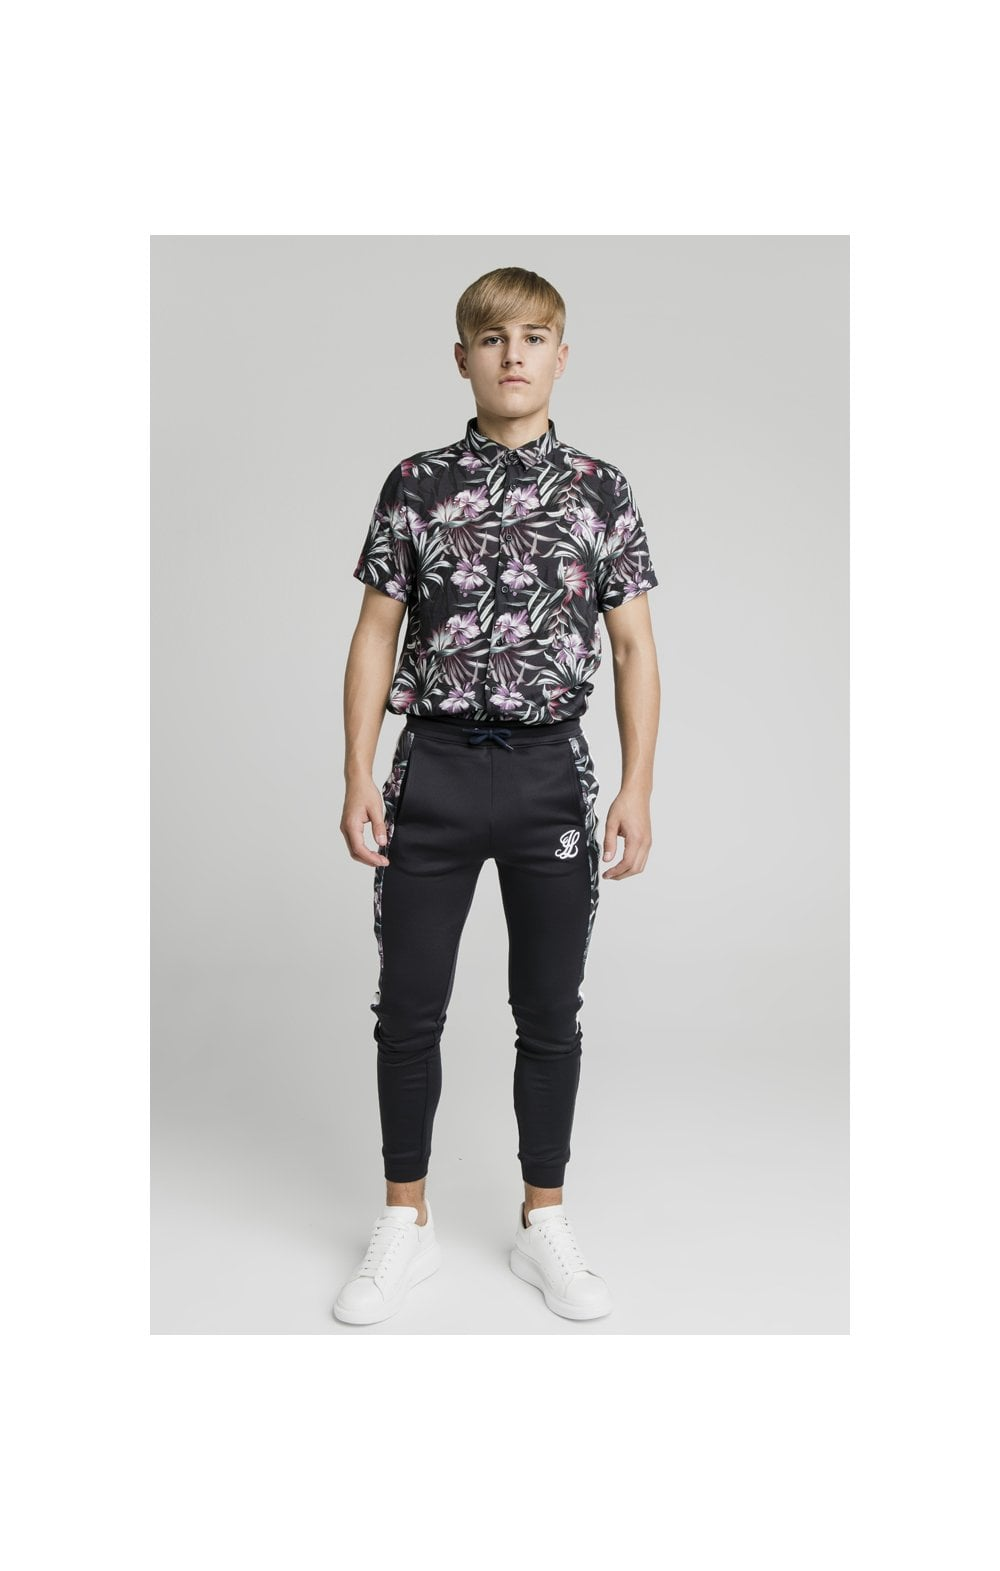 Illusive London Dark Tropical Tape Pants - Navy